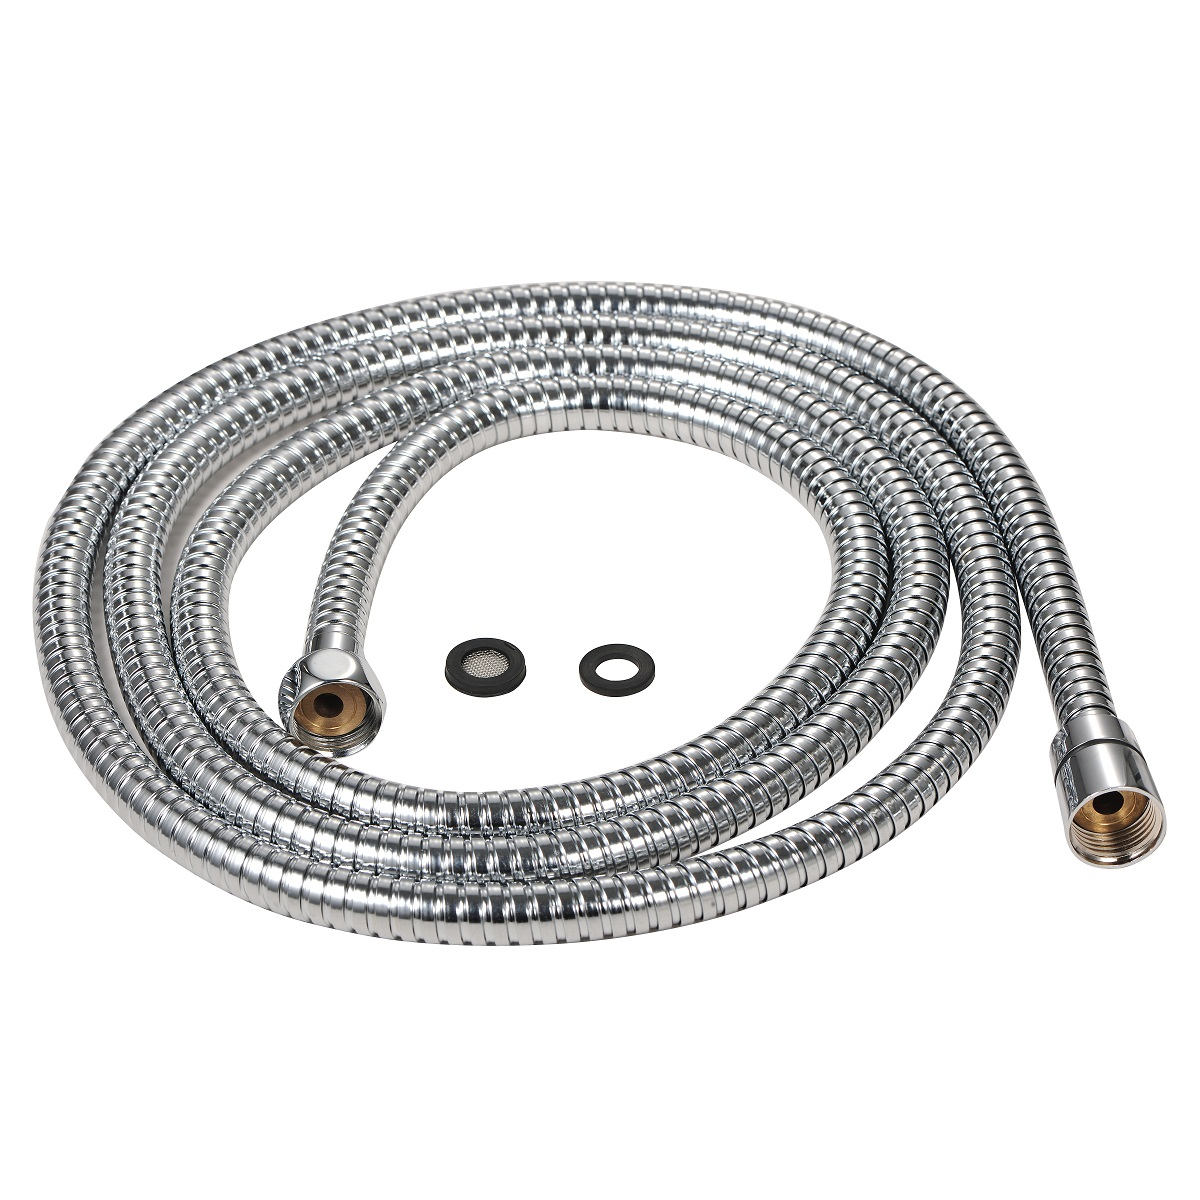 Purelux 100 Inch Extra Long Shower Hose for Handheld Shower Head with Brass Fittings